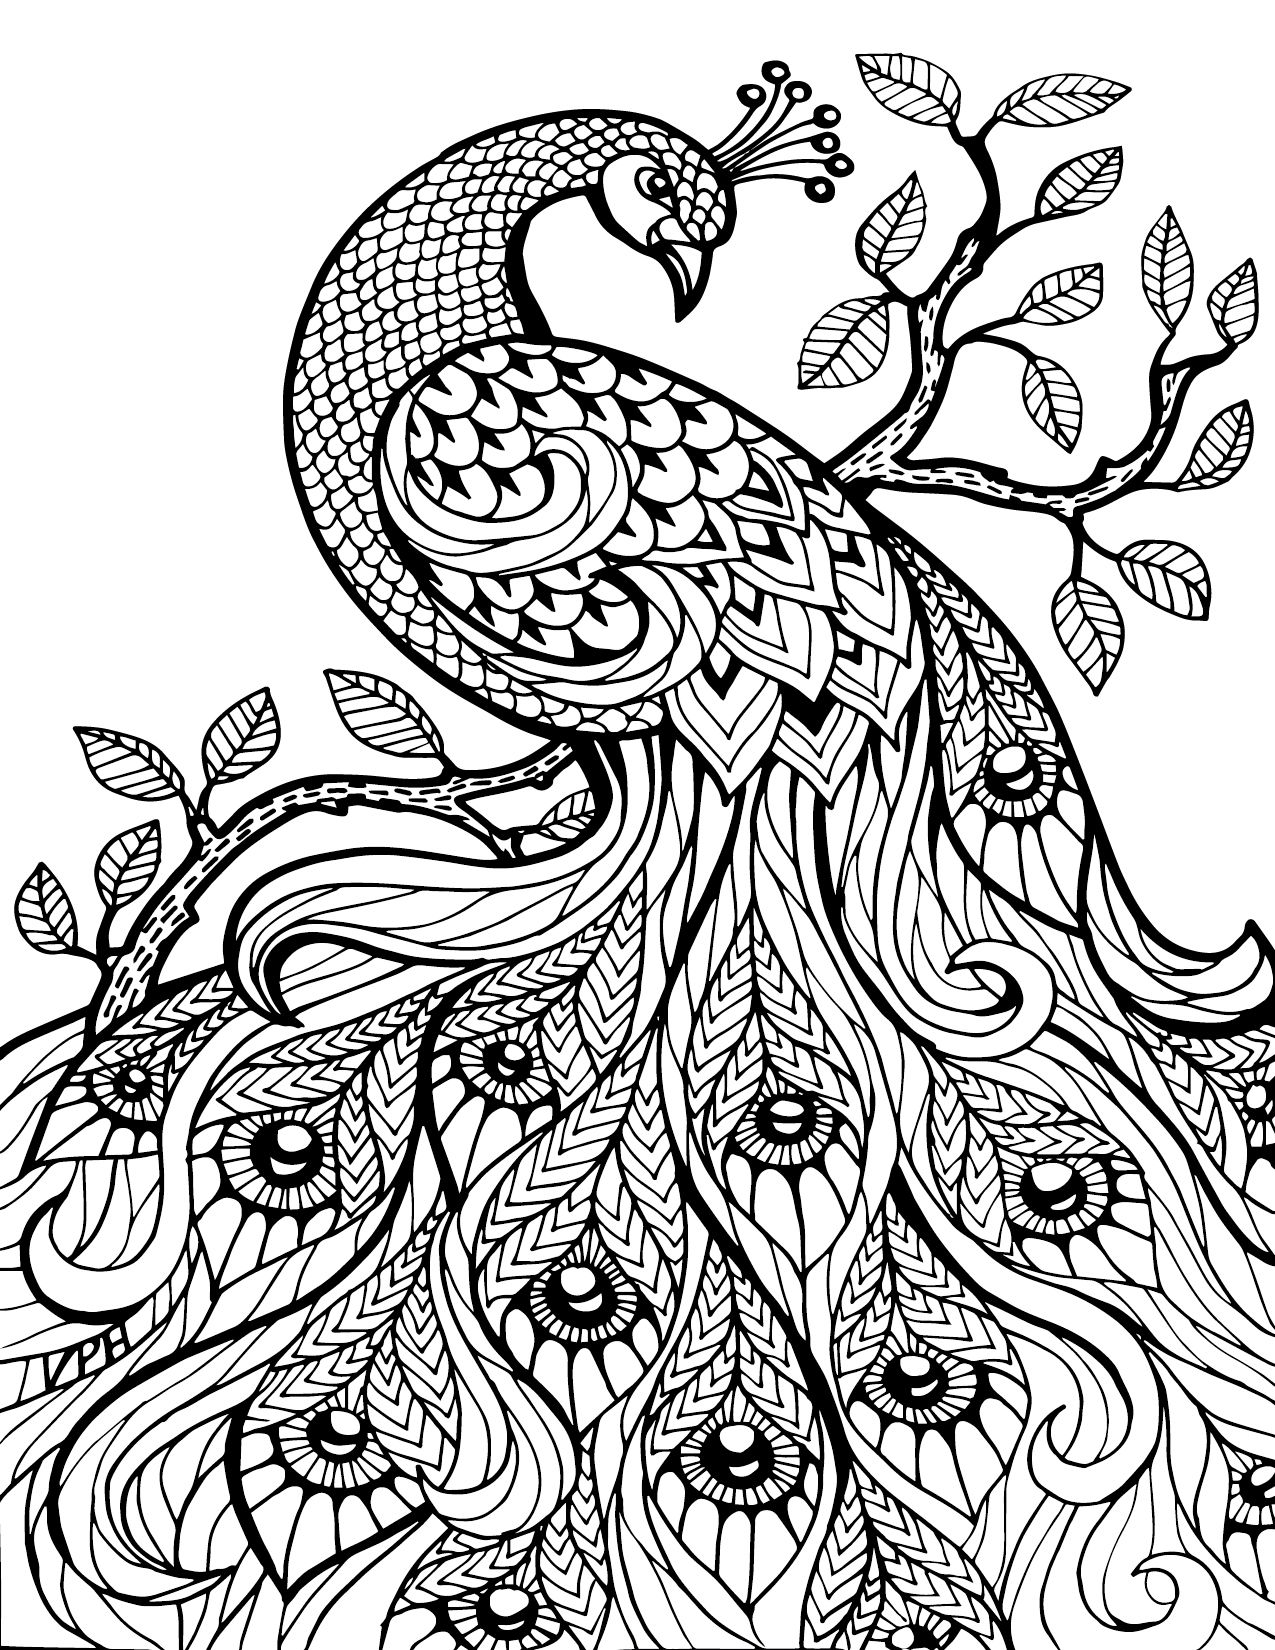 Coloring pages to print designs - Free Printable Coloring Pages For Adults Only Image 36 Art Davlin Publishing